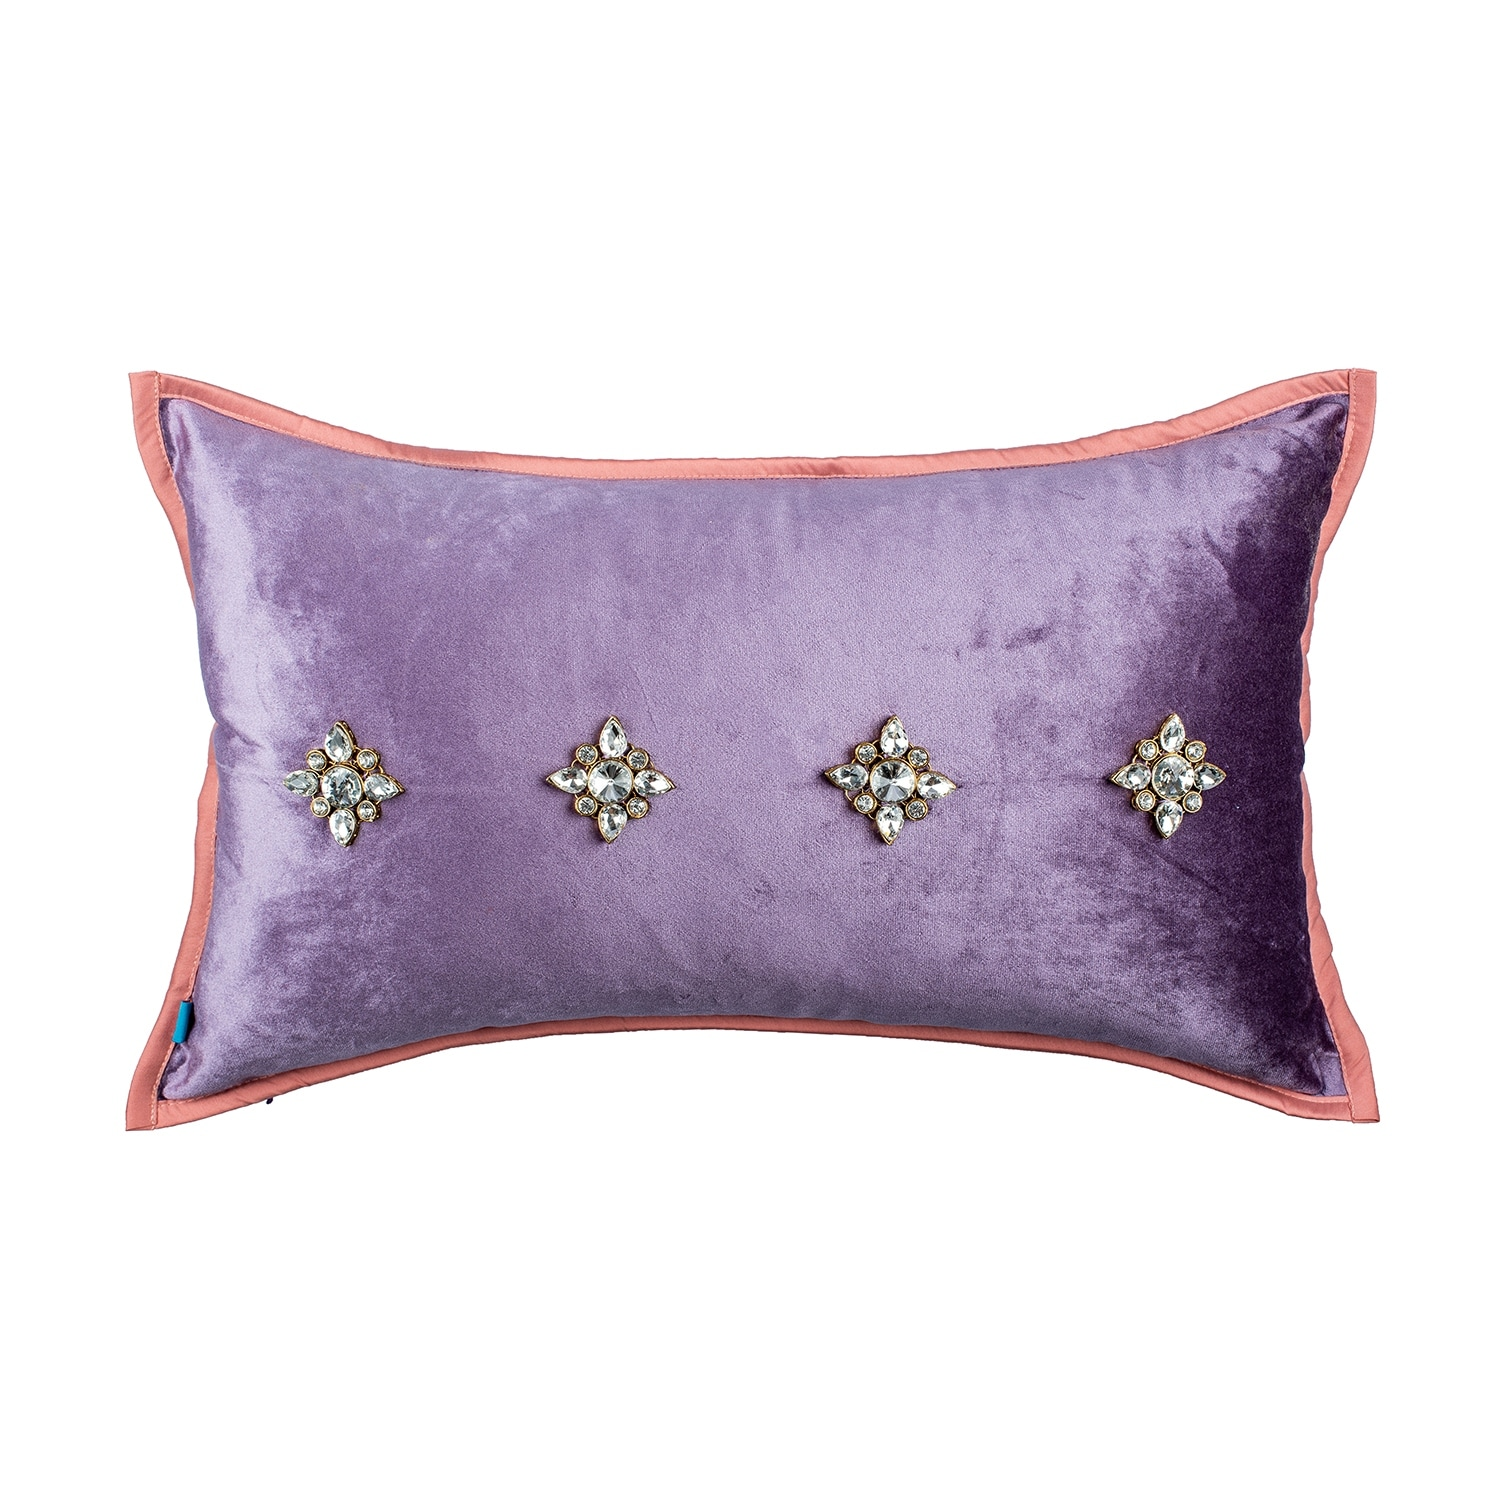 Pink Pillow Covers Throw Pillows Online At Our Best Decorative Accessories Deals